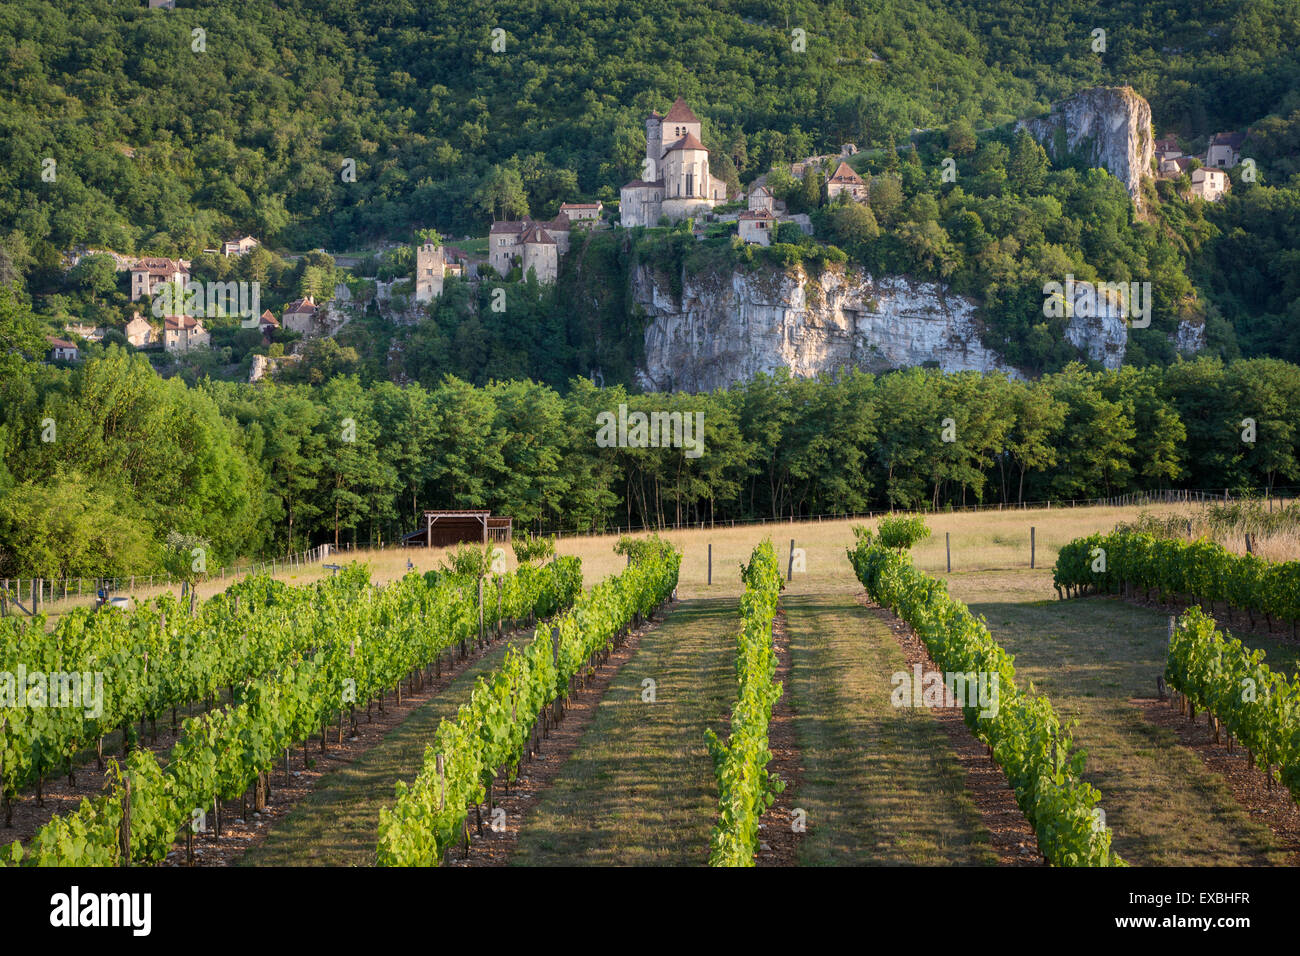 Evening view over vineyard of medieval town of Saint-Cirq-Lapopie, Midi-Pyrenees, France - Stock Image